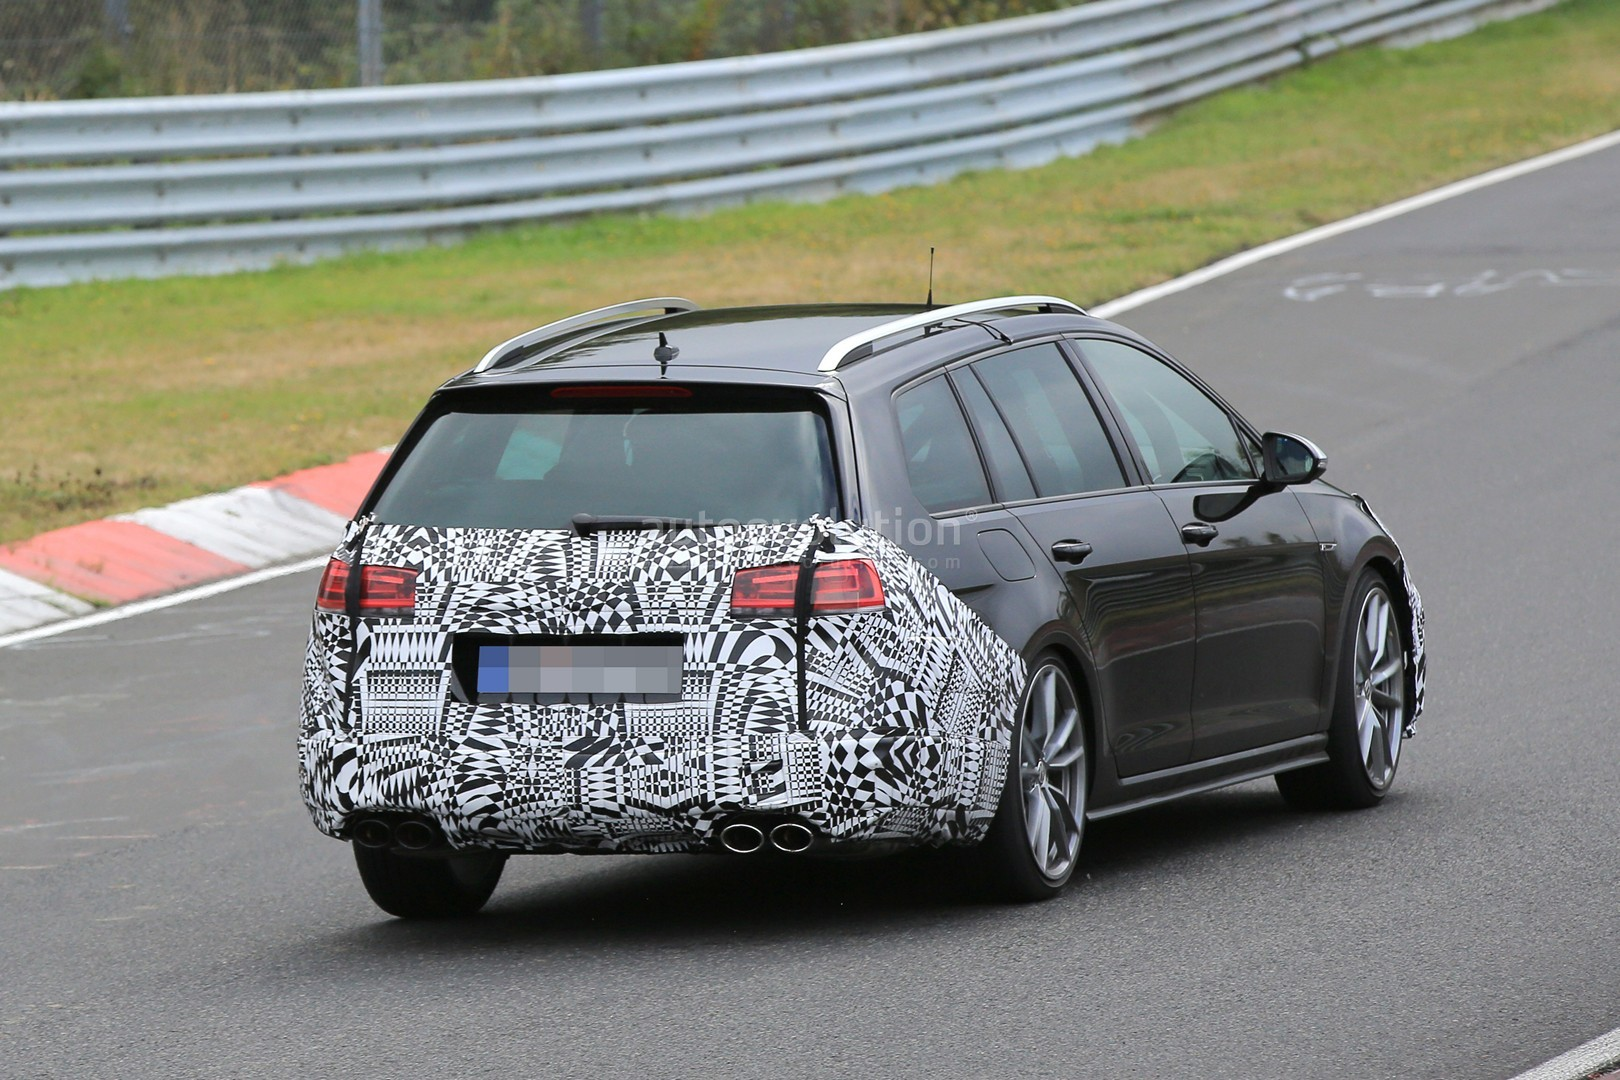 2017 golf r variant facelift makes nurburgring debut in camouflage autoevolution. Black Bedroom Furniture Sets. Home Design Ideas